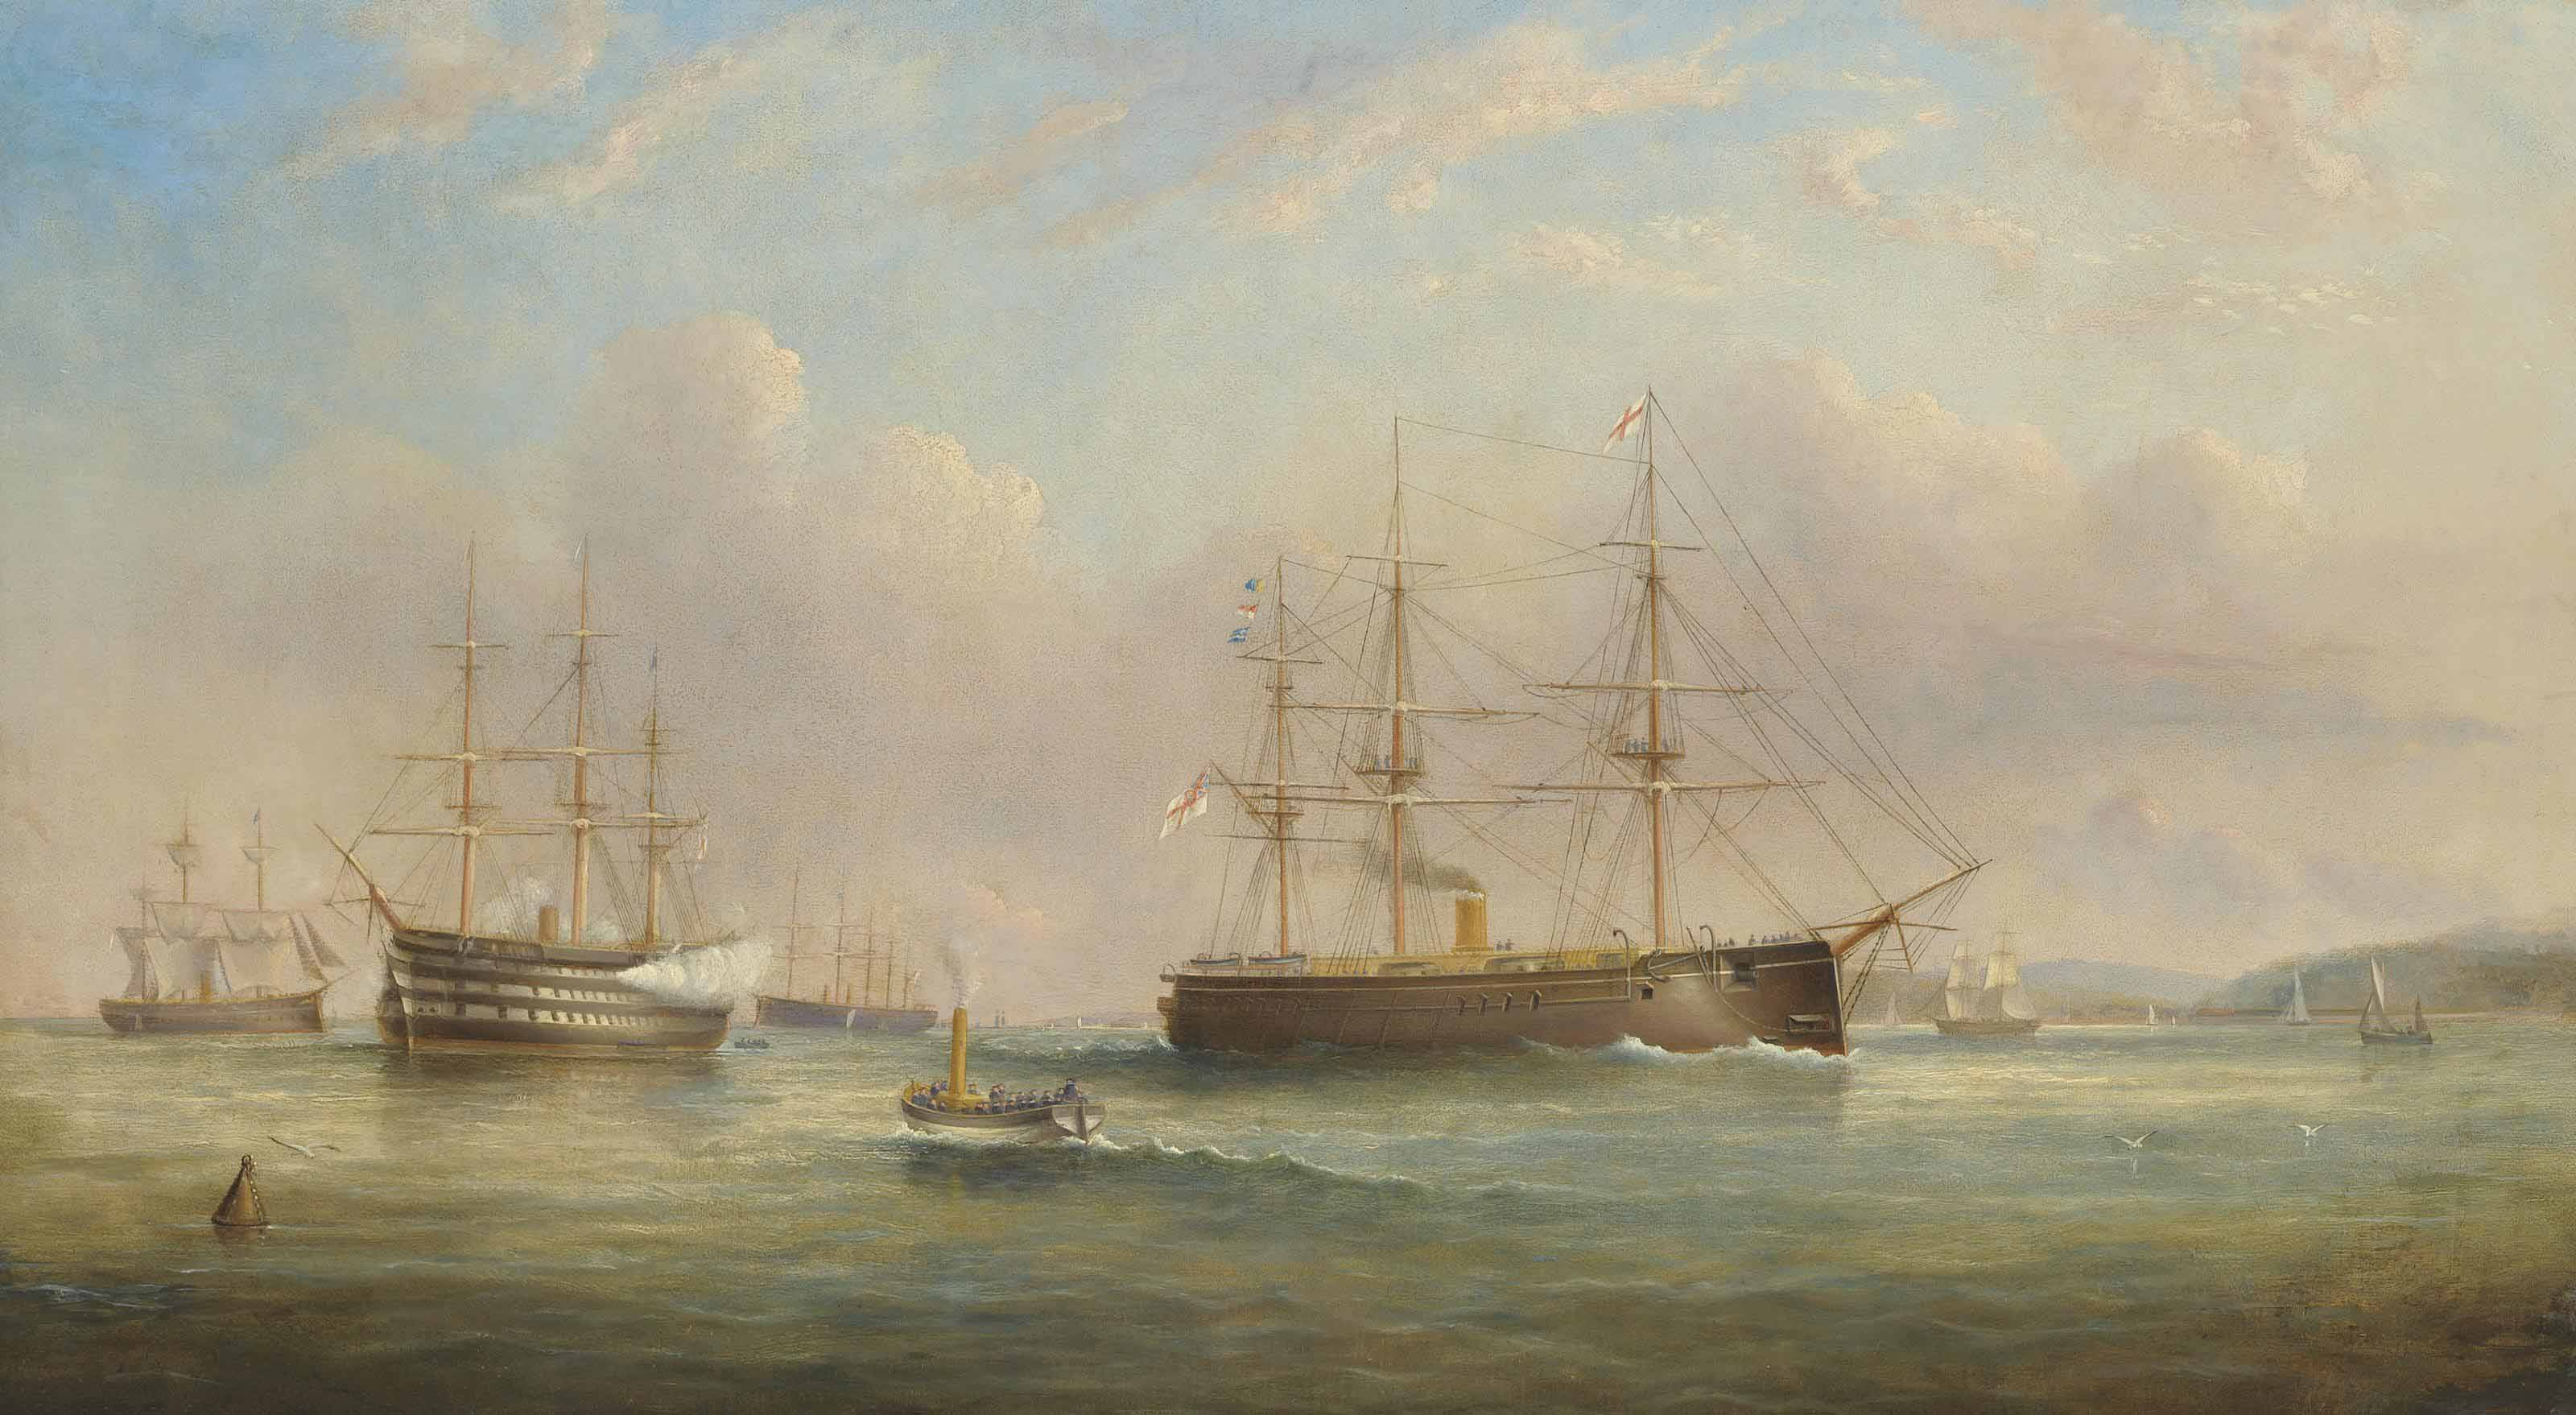 Royal Navy ships of the Duke of Wellington class lying at anchor at Spithead, with one firing a salute to acknowledge the departure of an Admiral on board the ironclad, thought to be H.M.S. Sultan